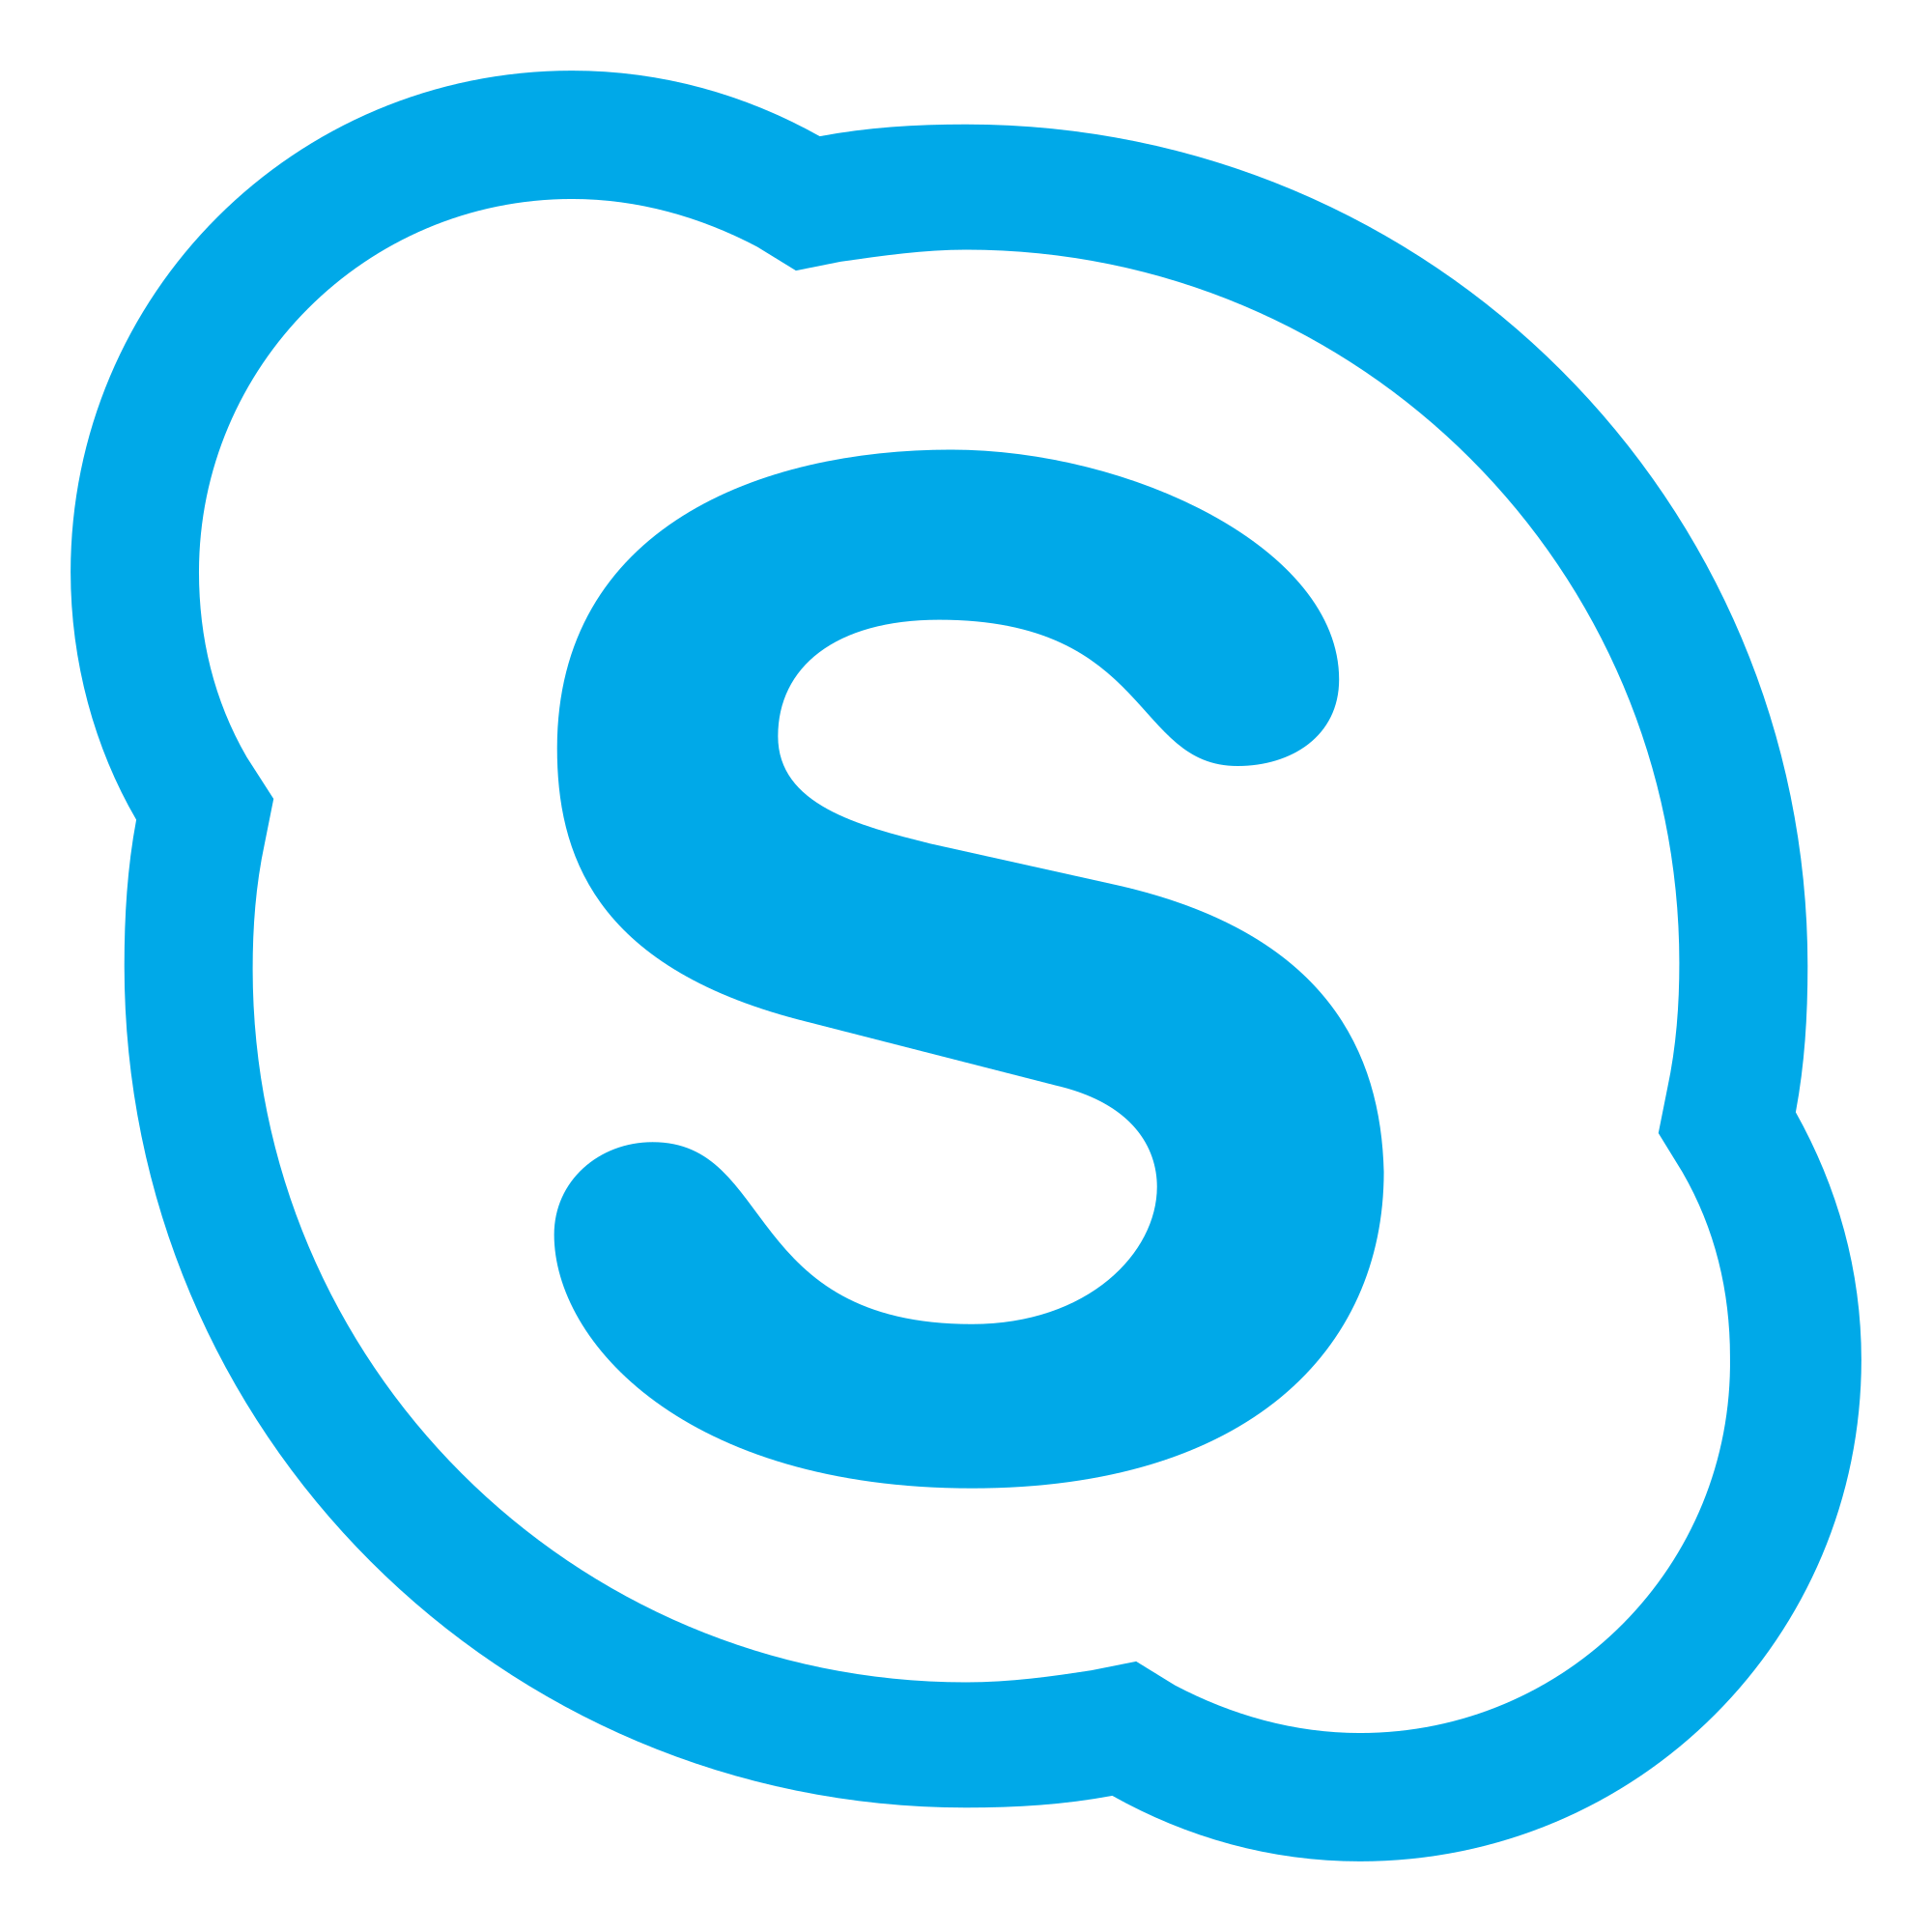 Skype transparent official. Minute call fitnessft